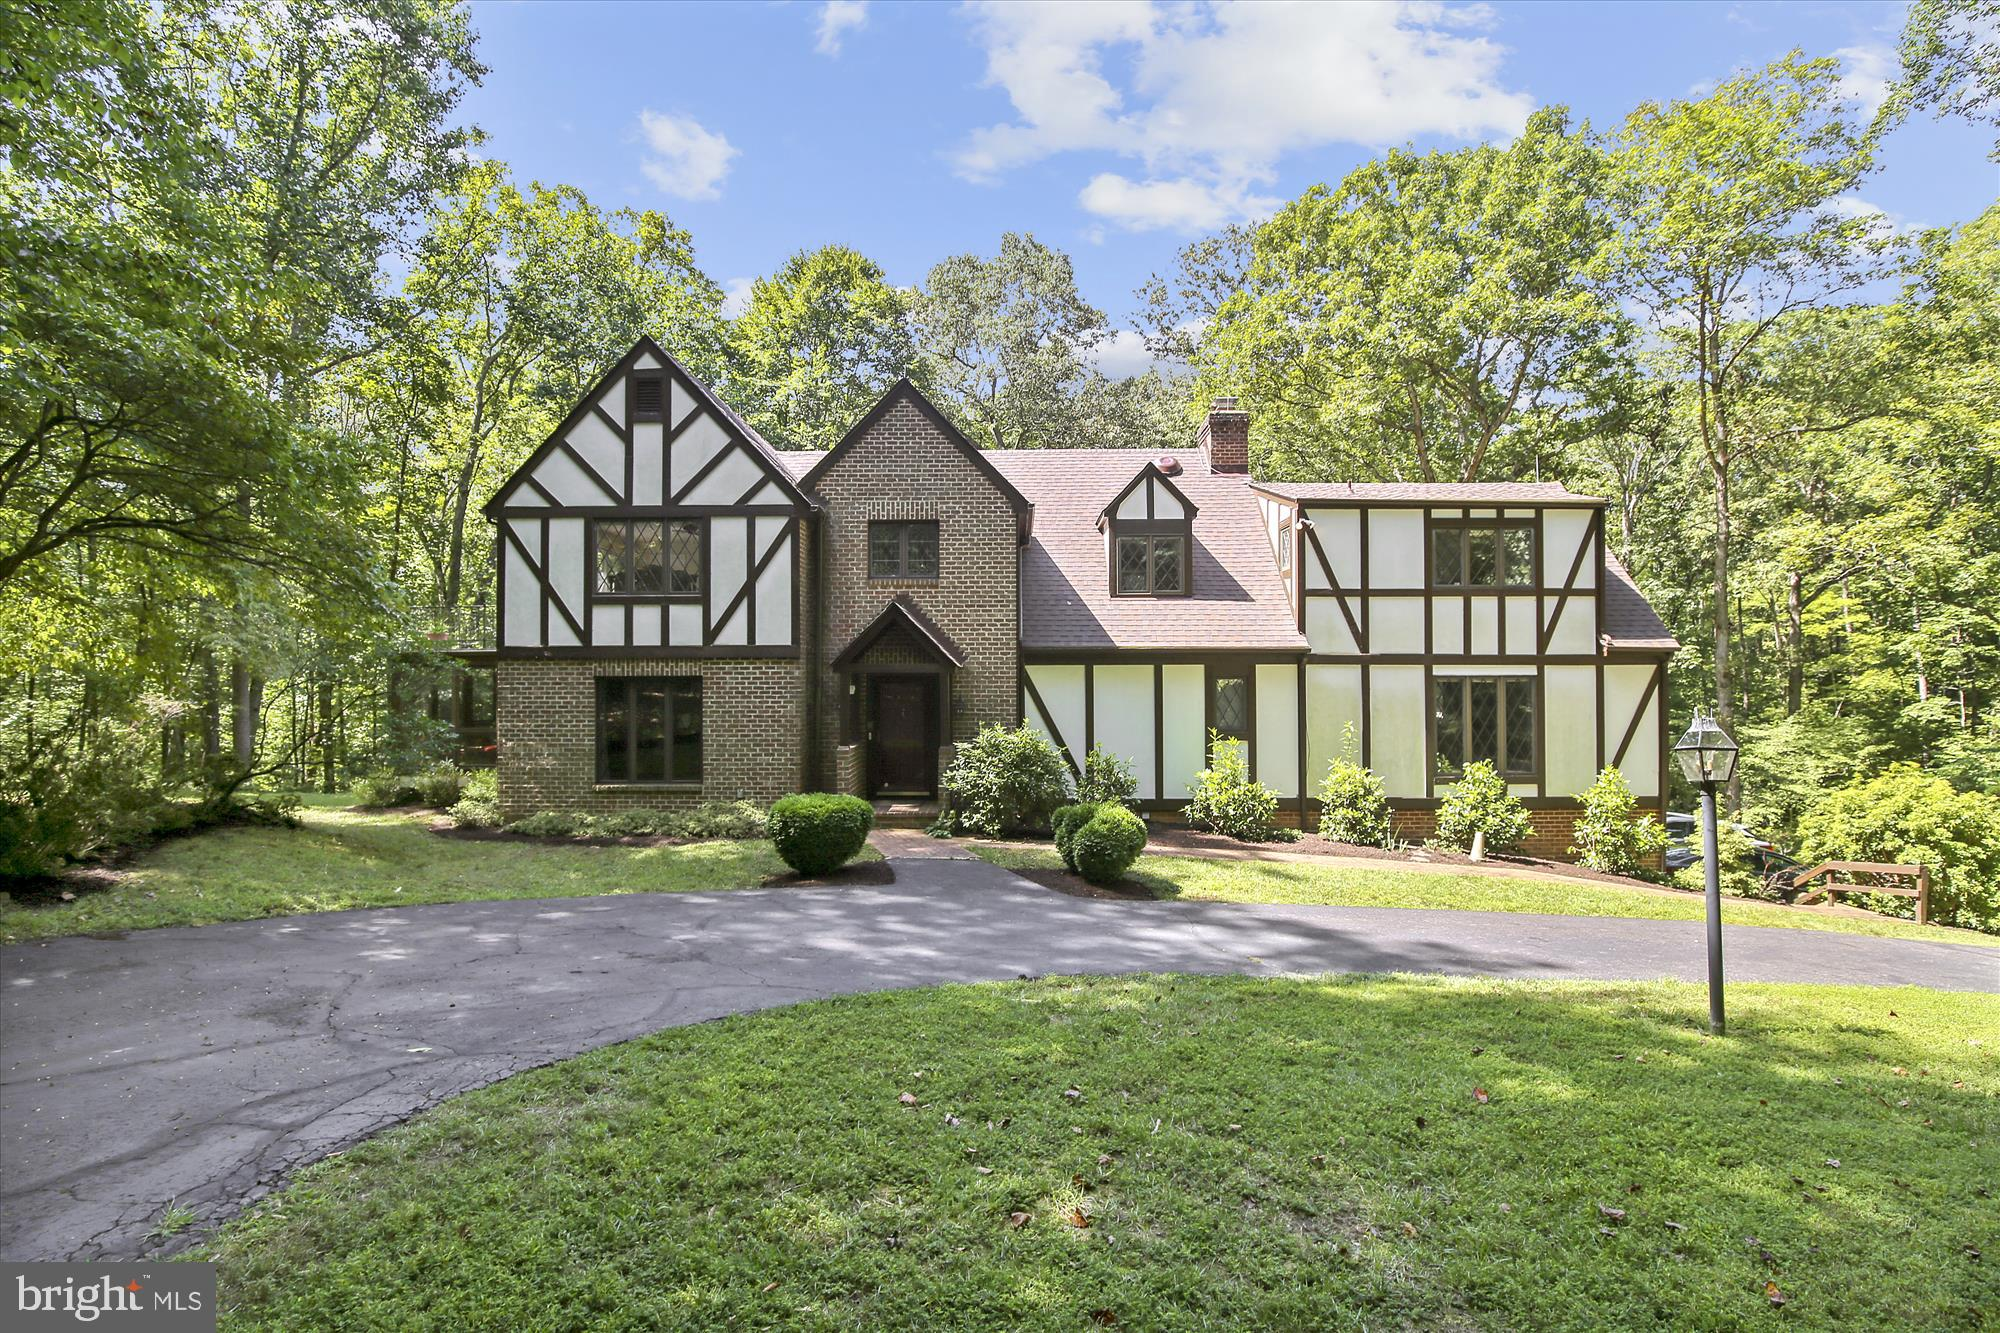 Custom 1-Owner Tudor on Private Treed 5-Acre Lot in The English Hills Estate. *****Fabulous Main Level with Abundance of Living/Entertaining Space, including Eat-In Kitchen, Family Room with Fireplace, Sun Room with Fireplace, Office with Built-Ins, Living Room with Fireplace, Dining Room and 2-Story Foyer. *****Owner's Suite with Private Balcony, Walk-In Closet and Ensuite Bath with Double Sinks, Shower and Separate Tub. *****Large Secondary Bedrooms and Laundry Room on Upper Level. *****Finished Lower Level with Den/Guest Room and Full Bath. *****Amazing Screened Porch with Cathedral Ceiling on Main Level with Walk-Out to Deck. *****New Asphalt Architectural Shingle Roof Installed Aug 2019. *****Hardwoods, Elegant Moldings, 3 Gas Fireplaces, 2-Zone Heat/AC, Natural Gas, and Generous Closet/Storage Space. *****Gated Entry, 2-Car Garage, Circular Front Driveway, Generator, Shed. *****Great Bones -- Keep Your Eyes on the Prize! ****CLICK VIRTUAL TOUR ICON FOR TRUPLACE PHOTO TOUR WITH FLOOR PLAN! *****Property Conveys As Is.